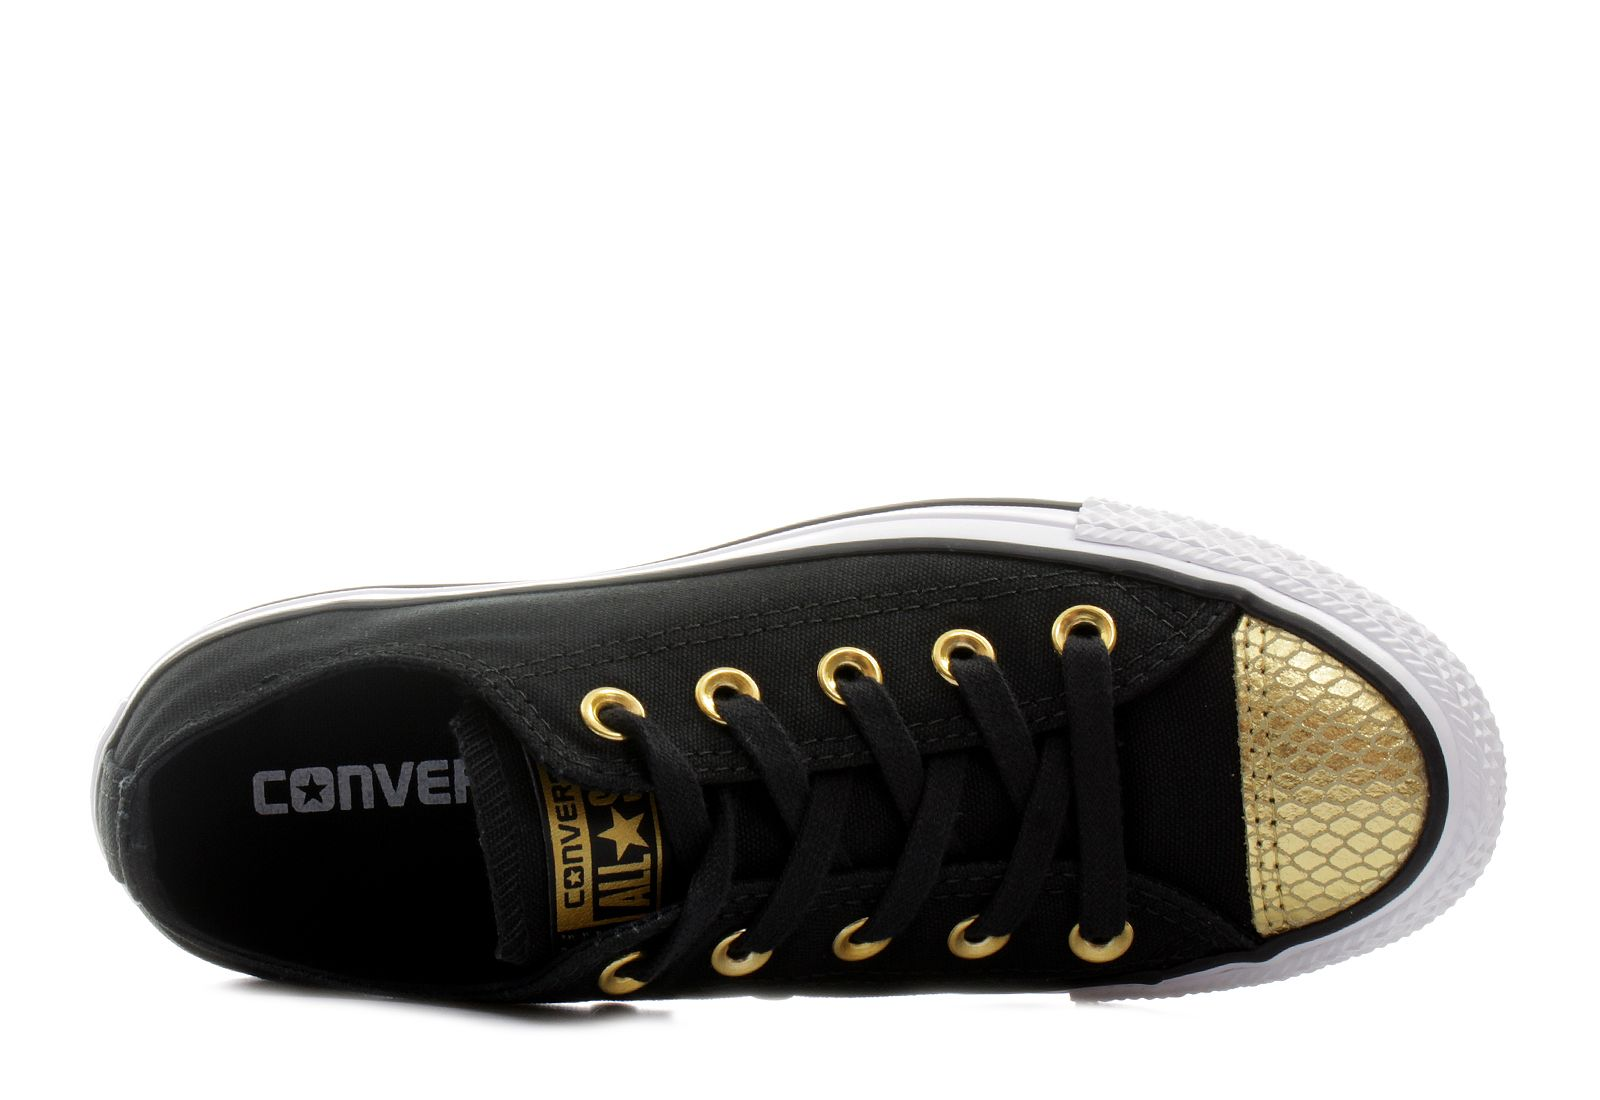 Converse Sneakers - Chuck Taylor All Star Specialty Ox - 555815C ... 10622e577